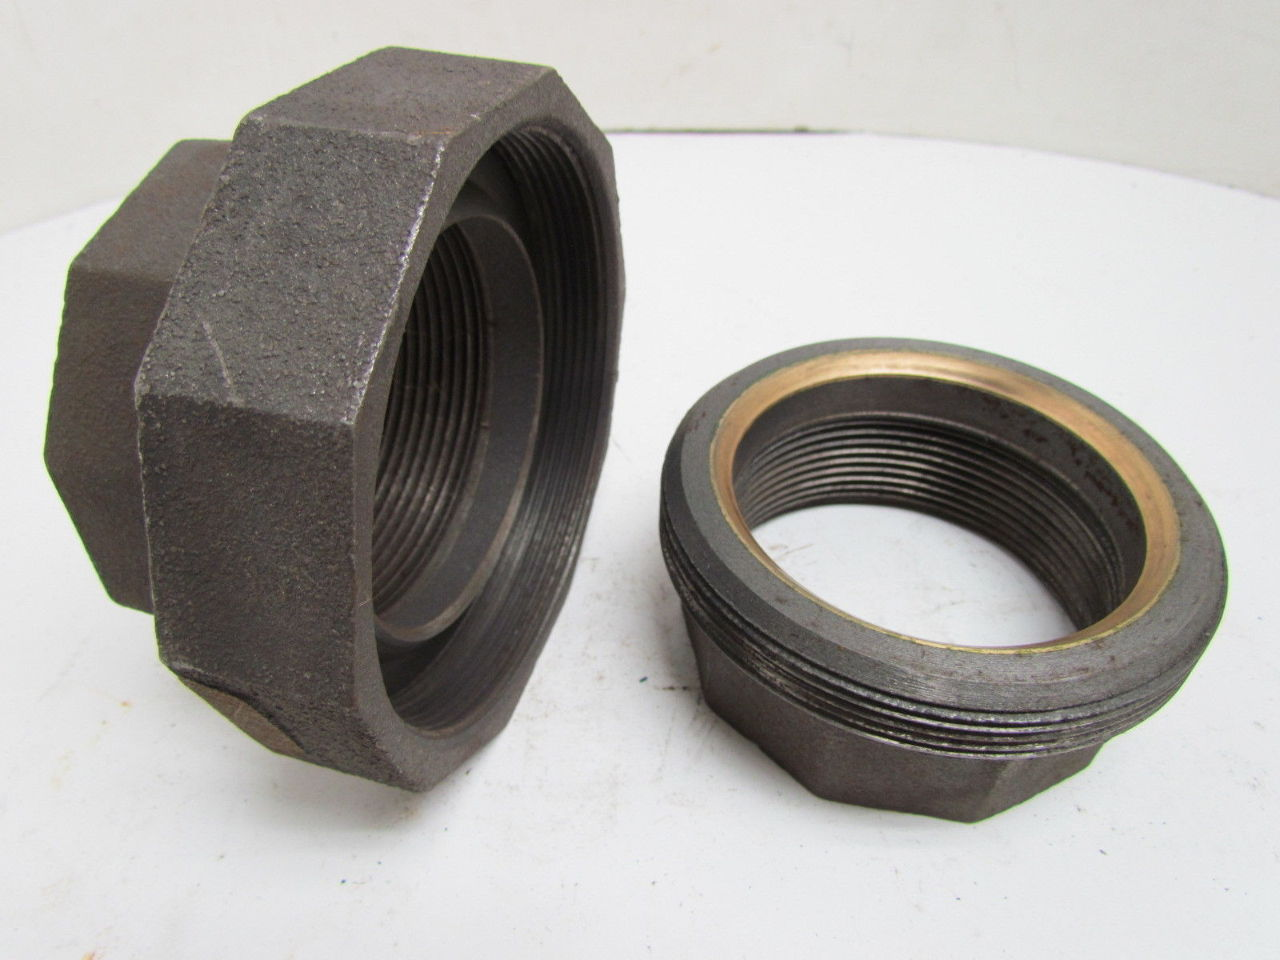 Grinnell quot npt class malleable iron black pipe union